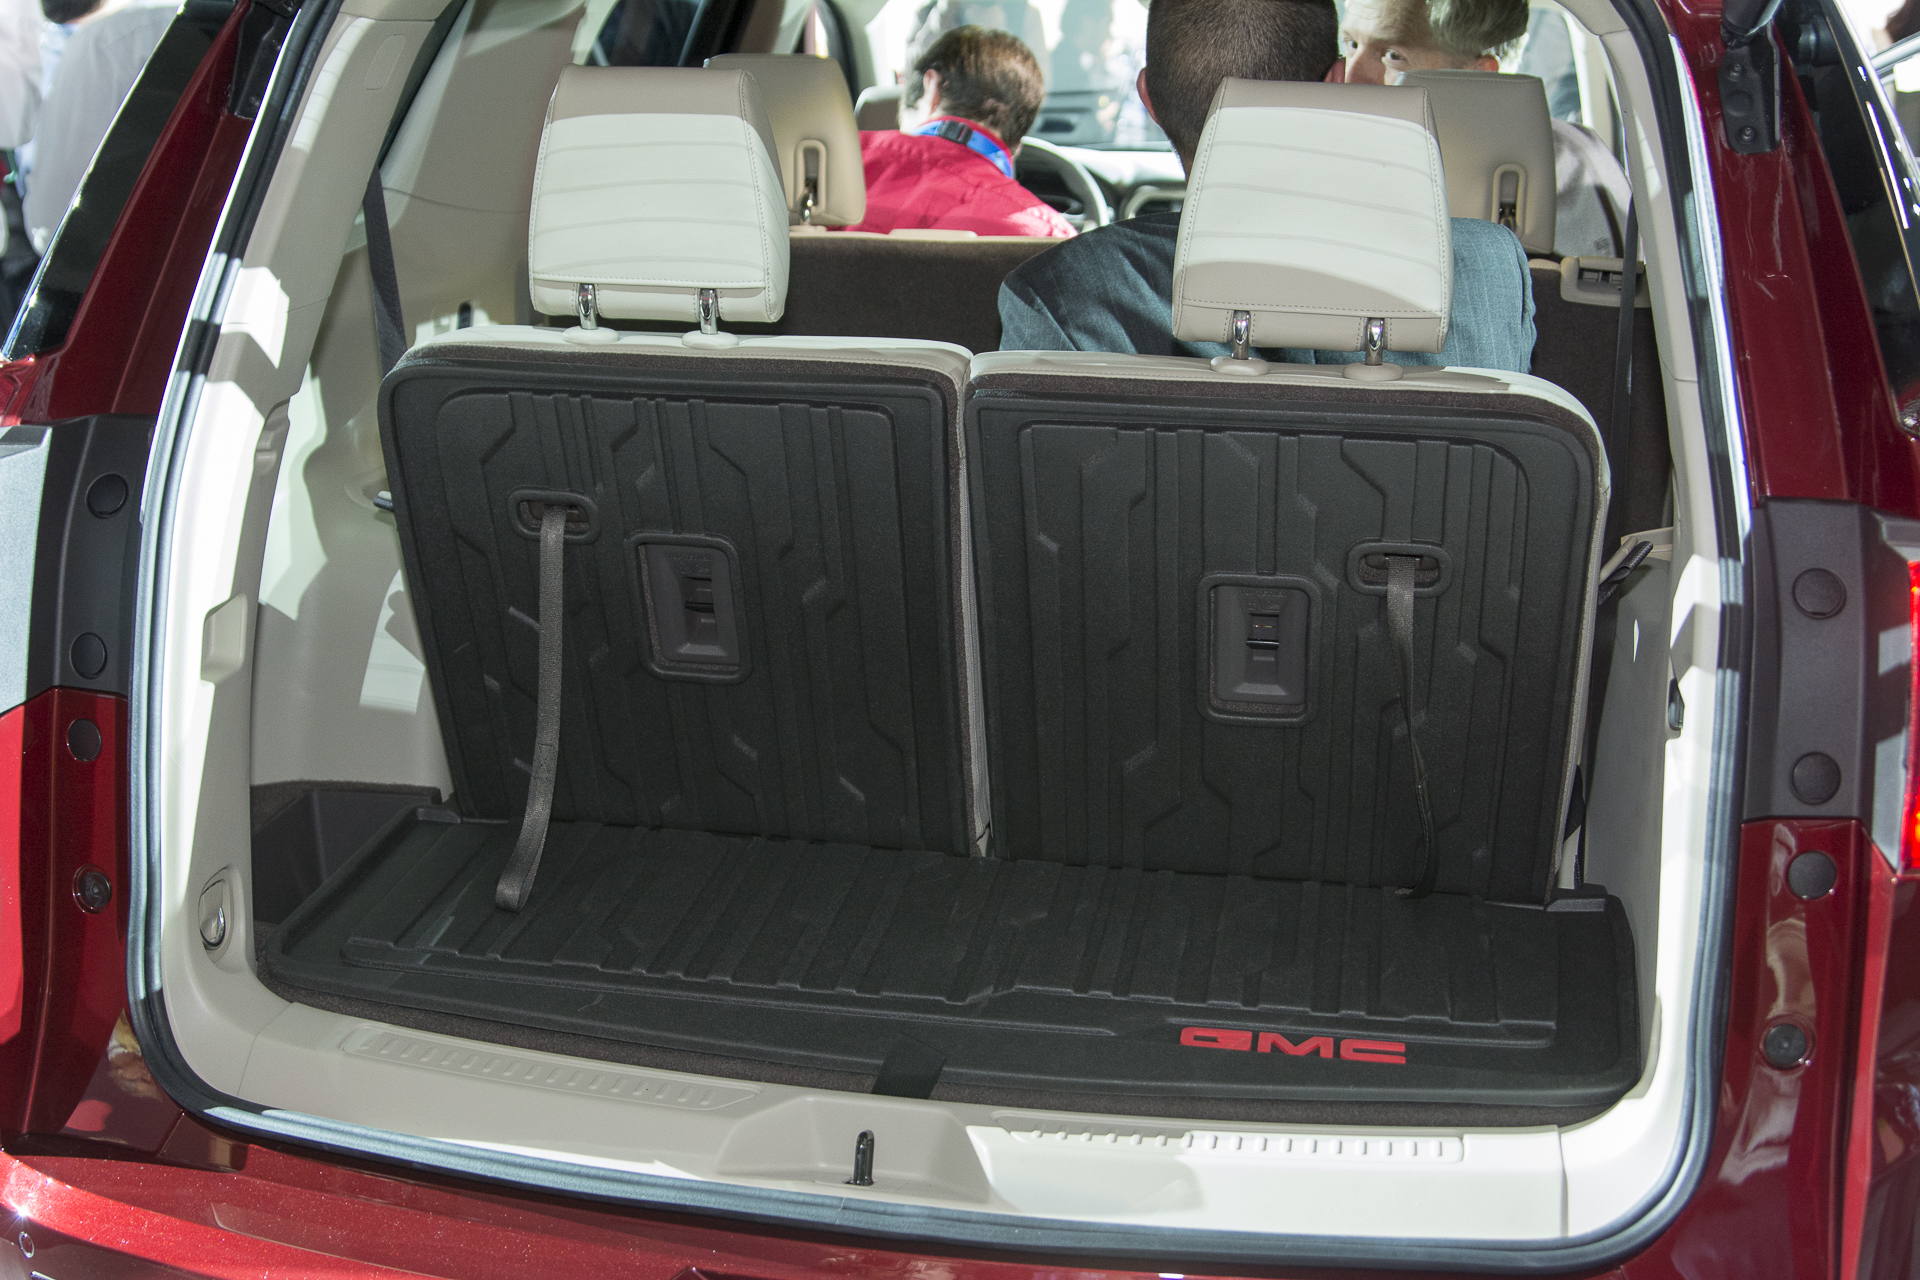 2017 Gmc Acadia Cargo Area Is Pretty Good Without The Third Row Non Existent With Http Www Autoblog 2016 01 12 2 Detroit